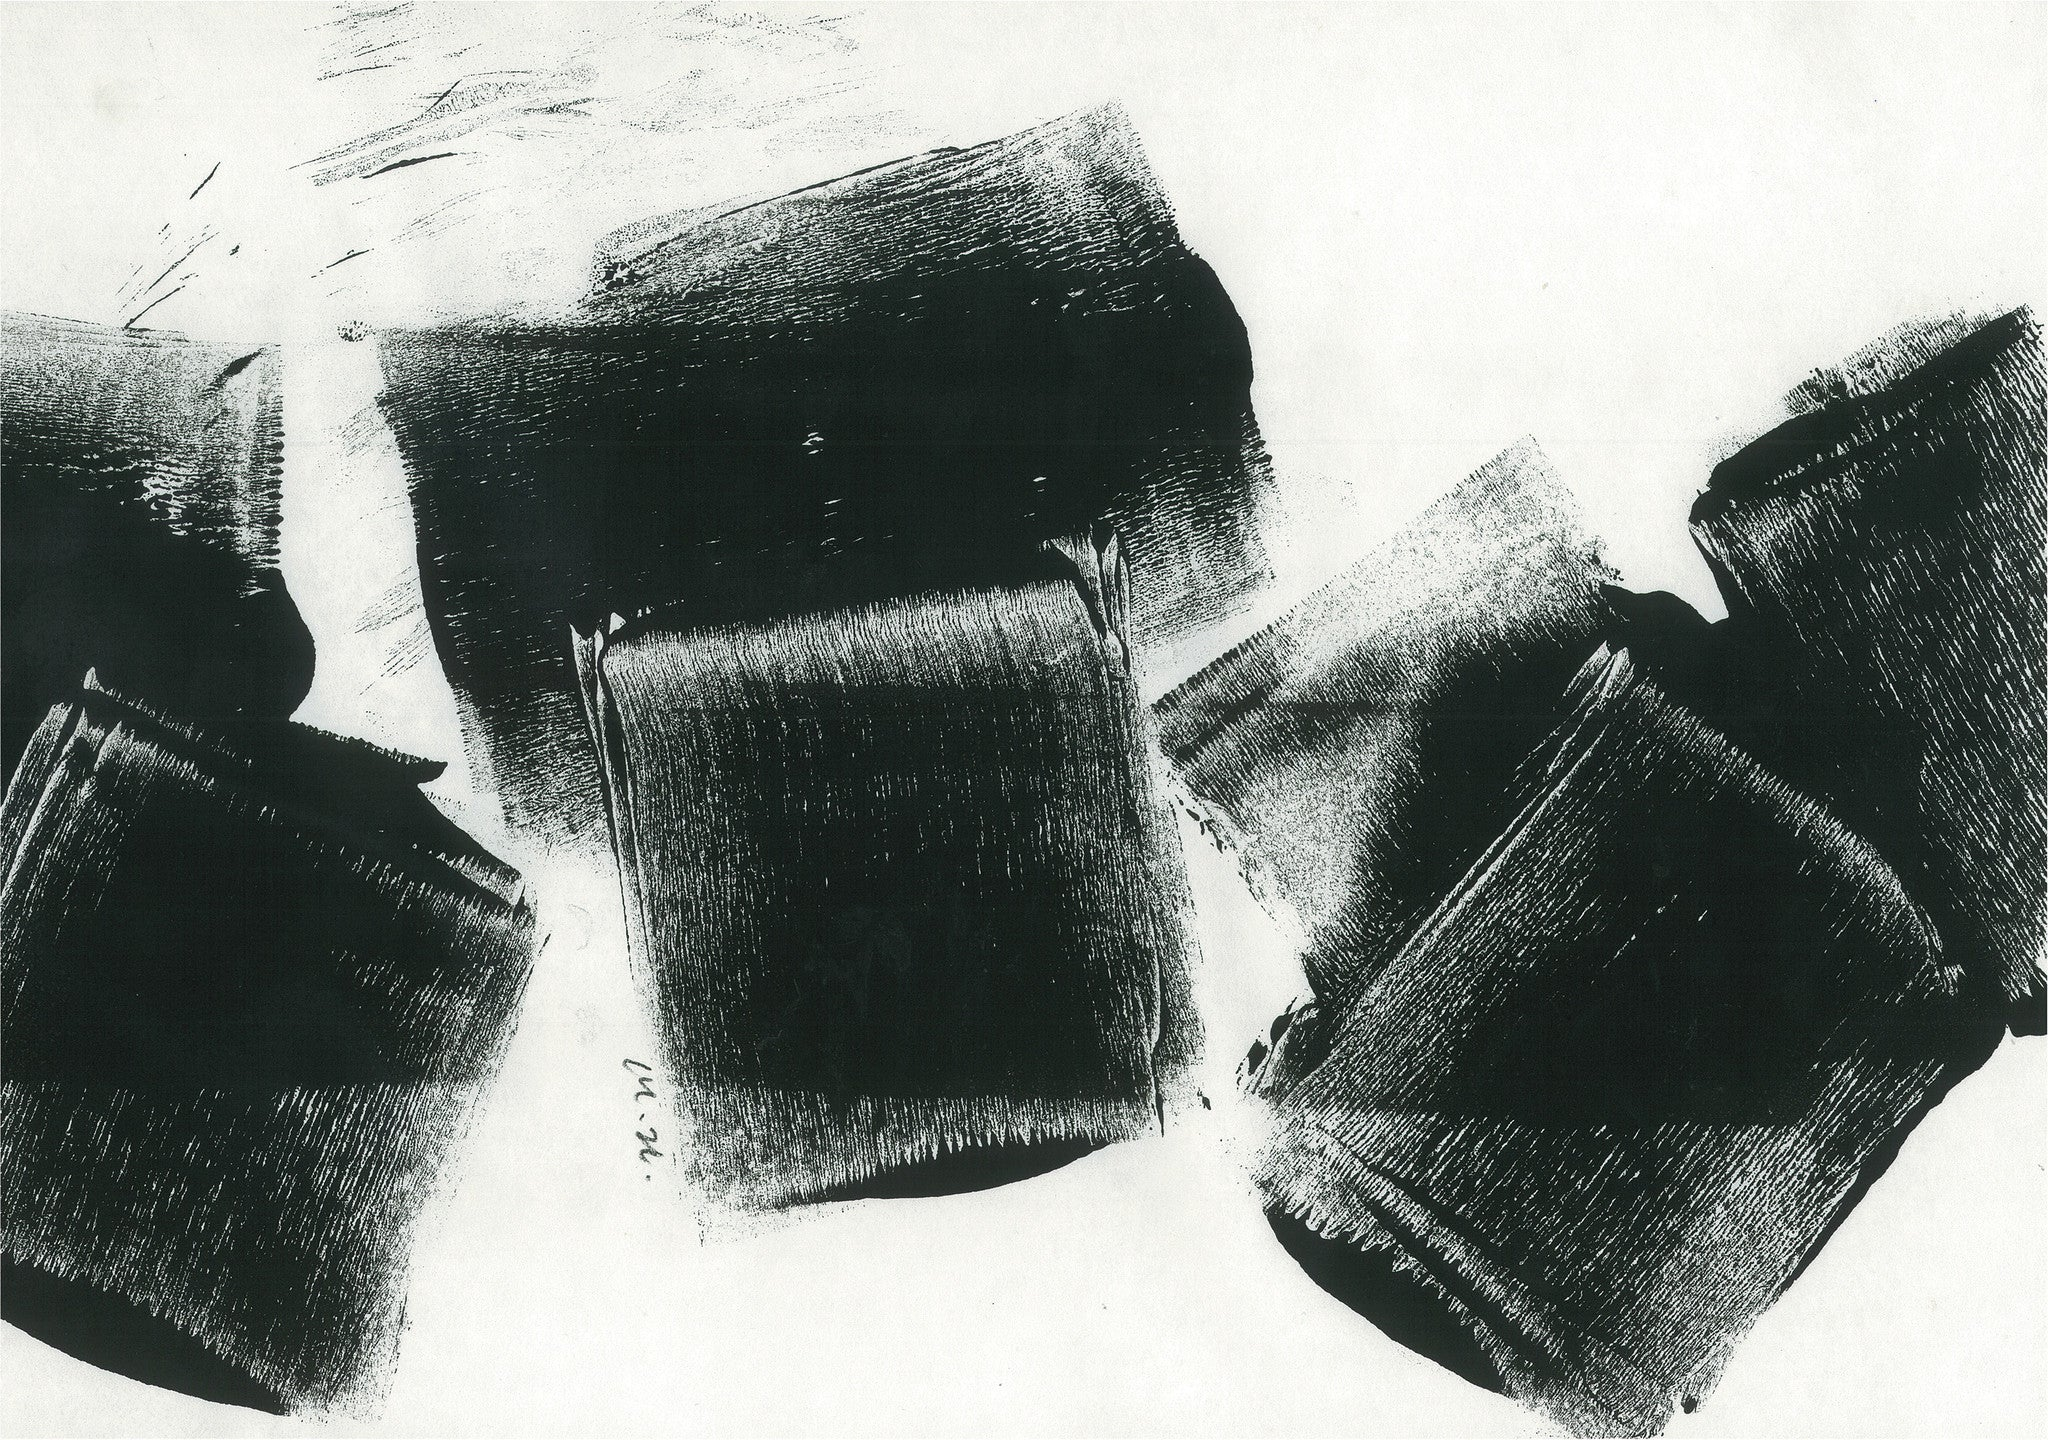 Monoprint | Blocks of Time